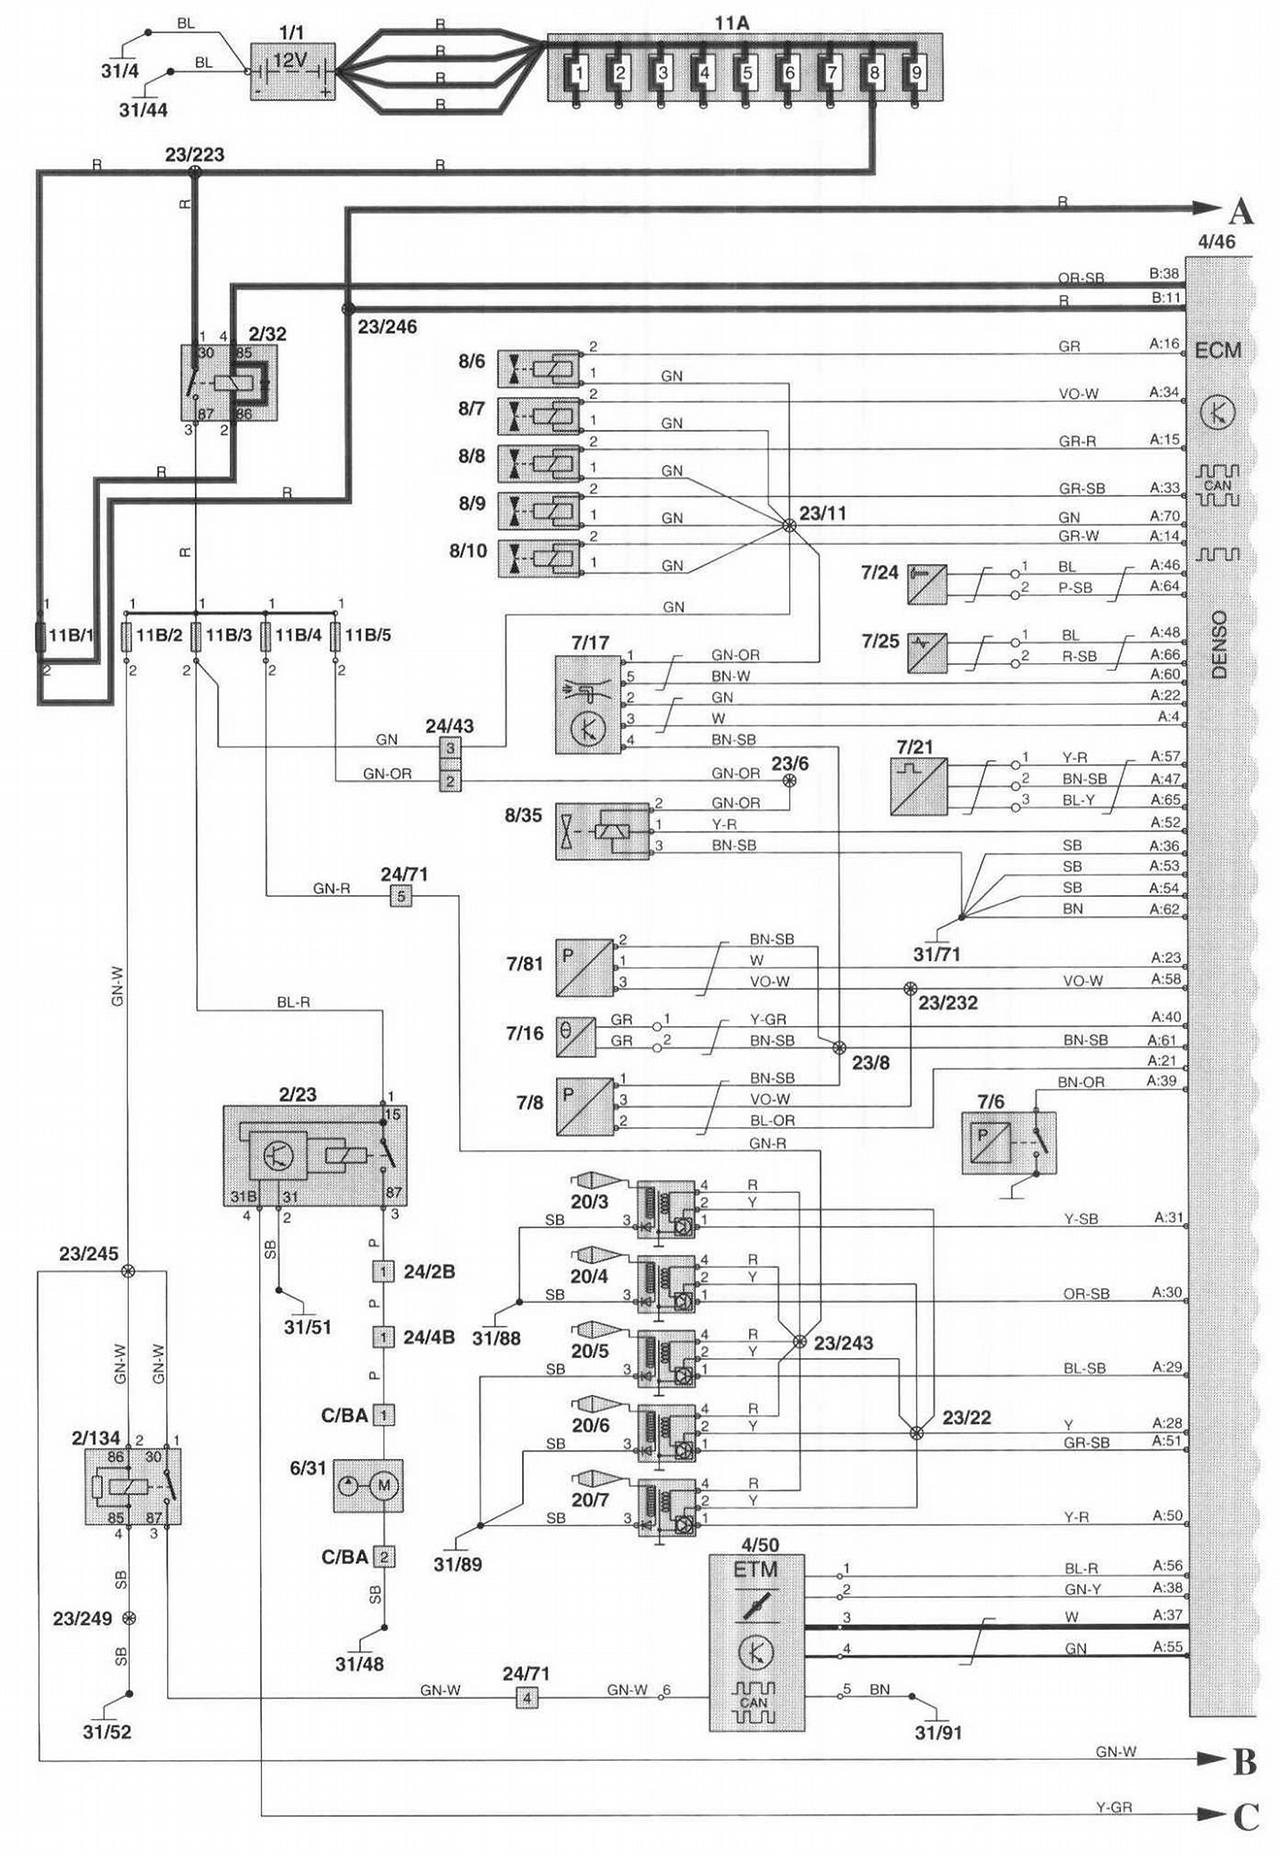 Ignition Wiring Diagram Volvo V4 0